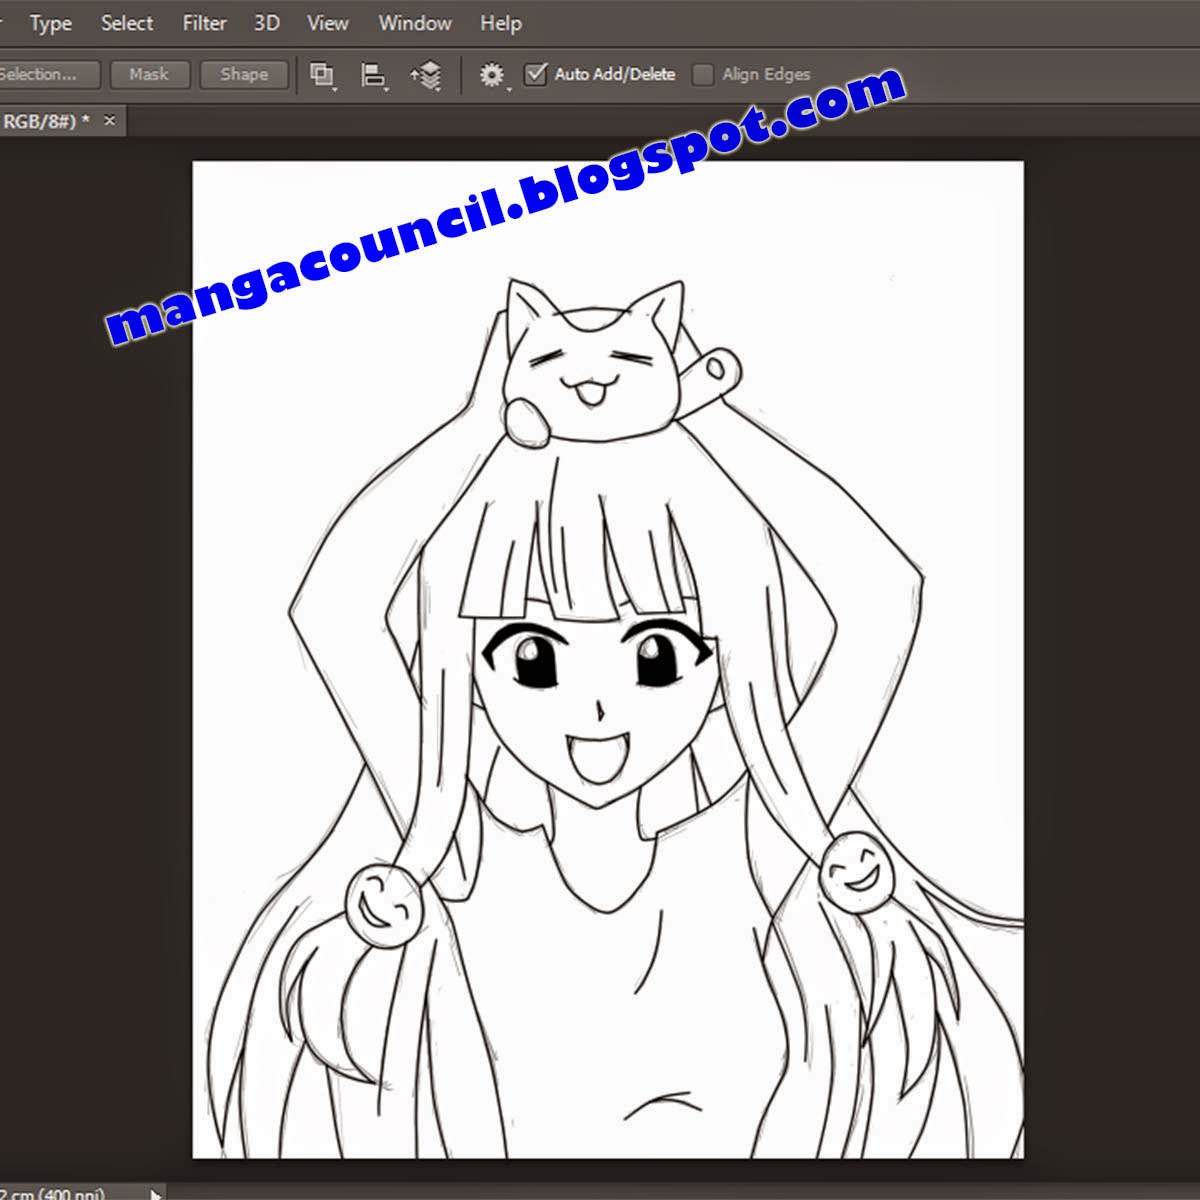 cara membuat clip art dengan photoshop - photo #24